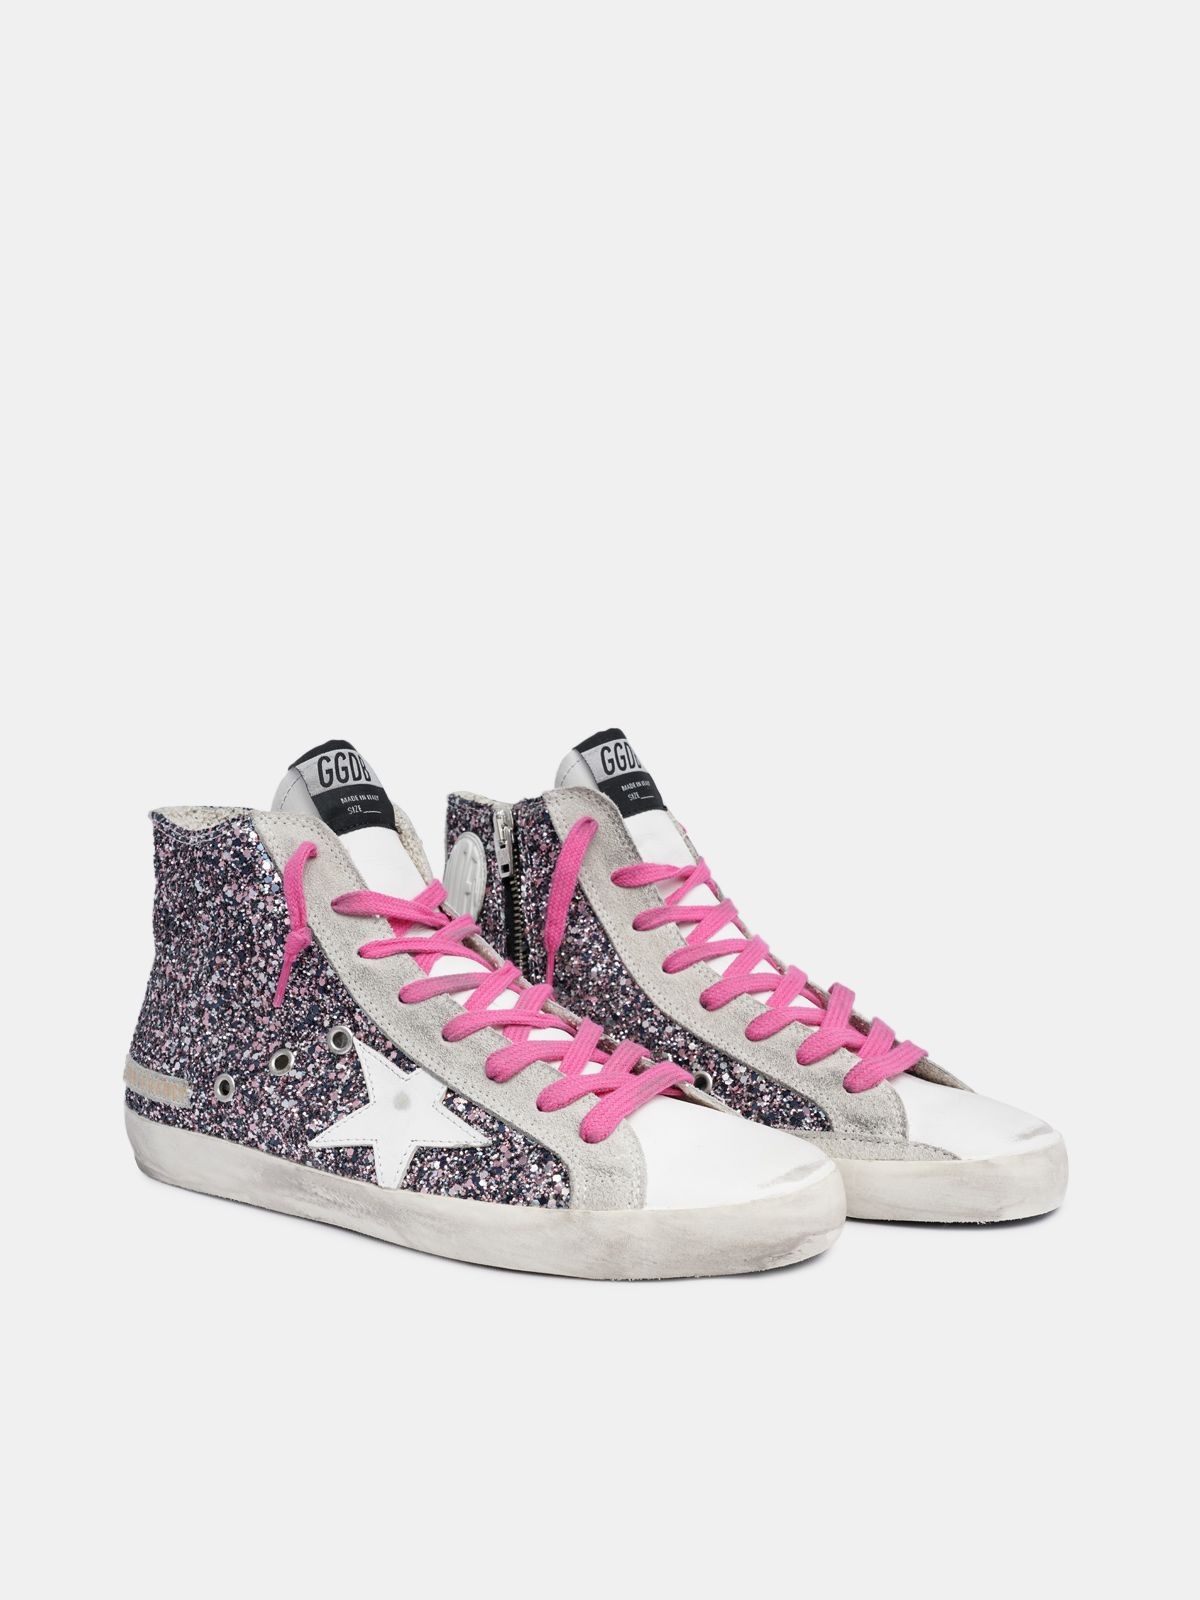 Golden Goose - Francy sneakers with multicolour glitter and fuchsia laces in